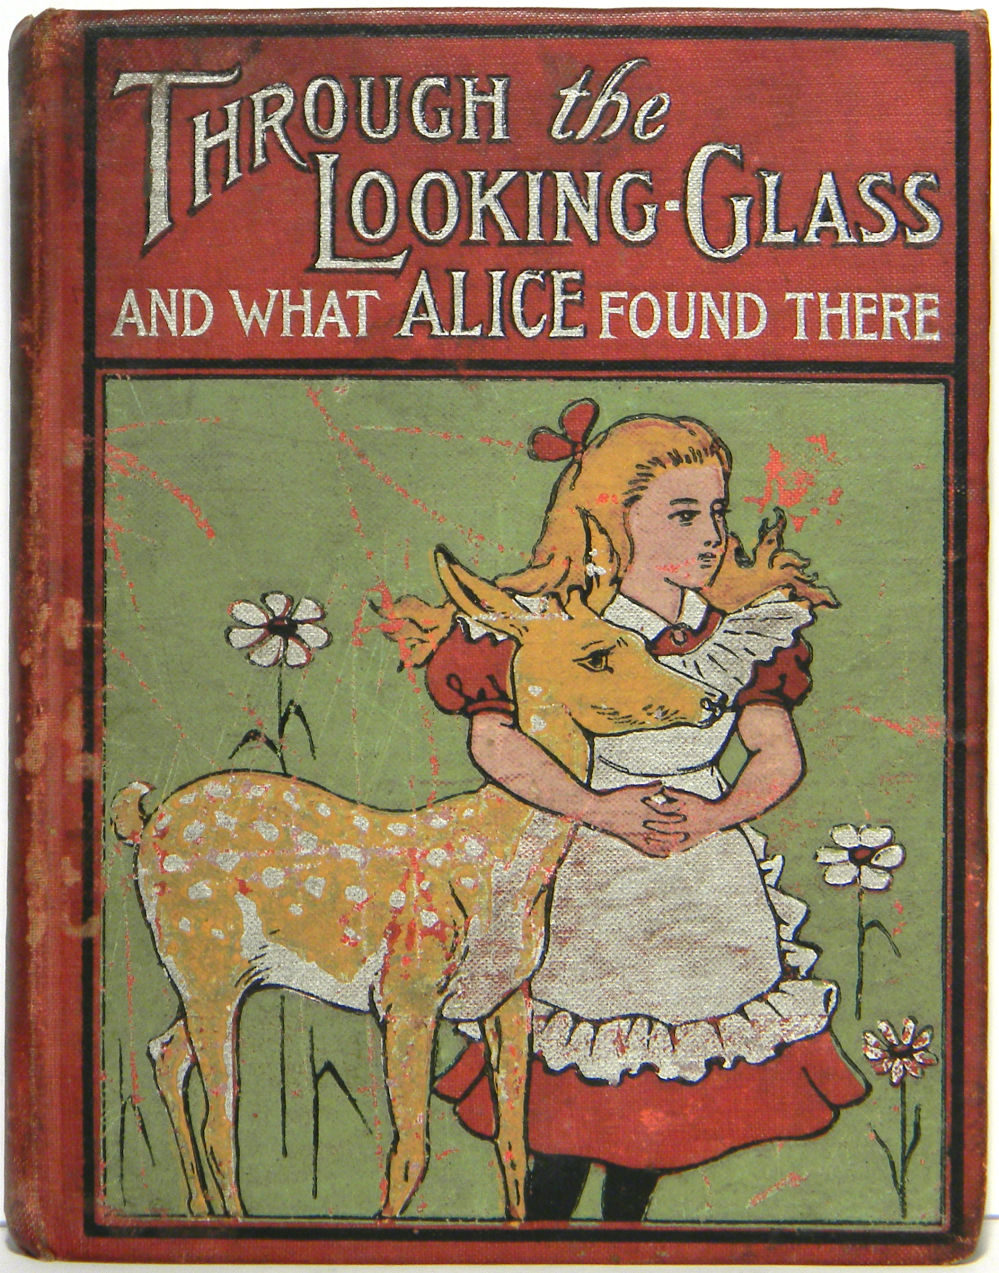 Through the Looking Glass and What Alice Found There (includes Jabberwocky)